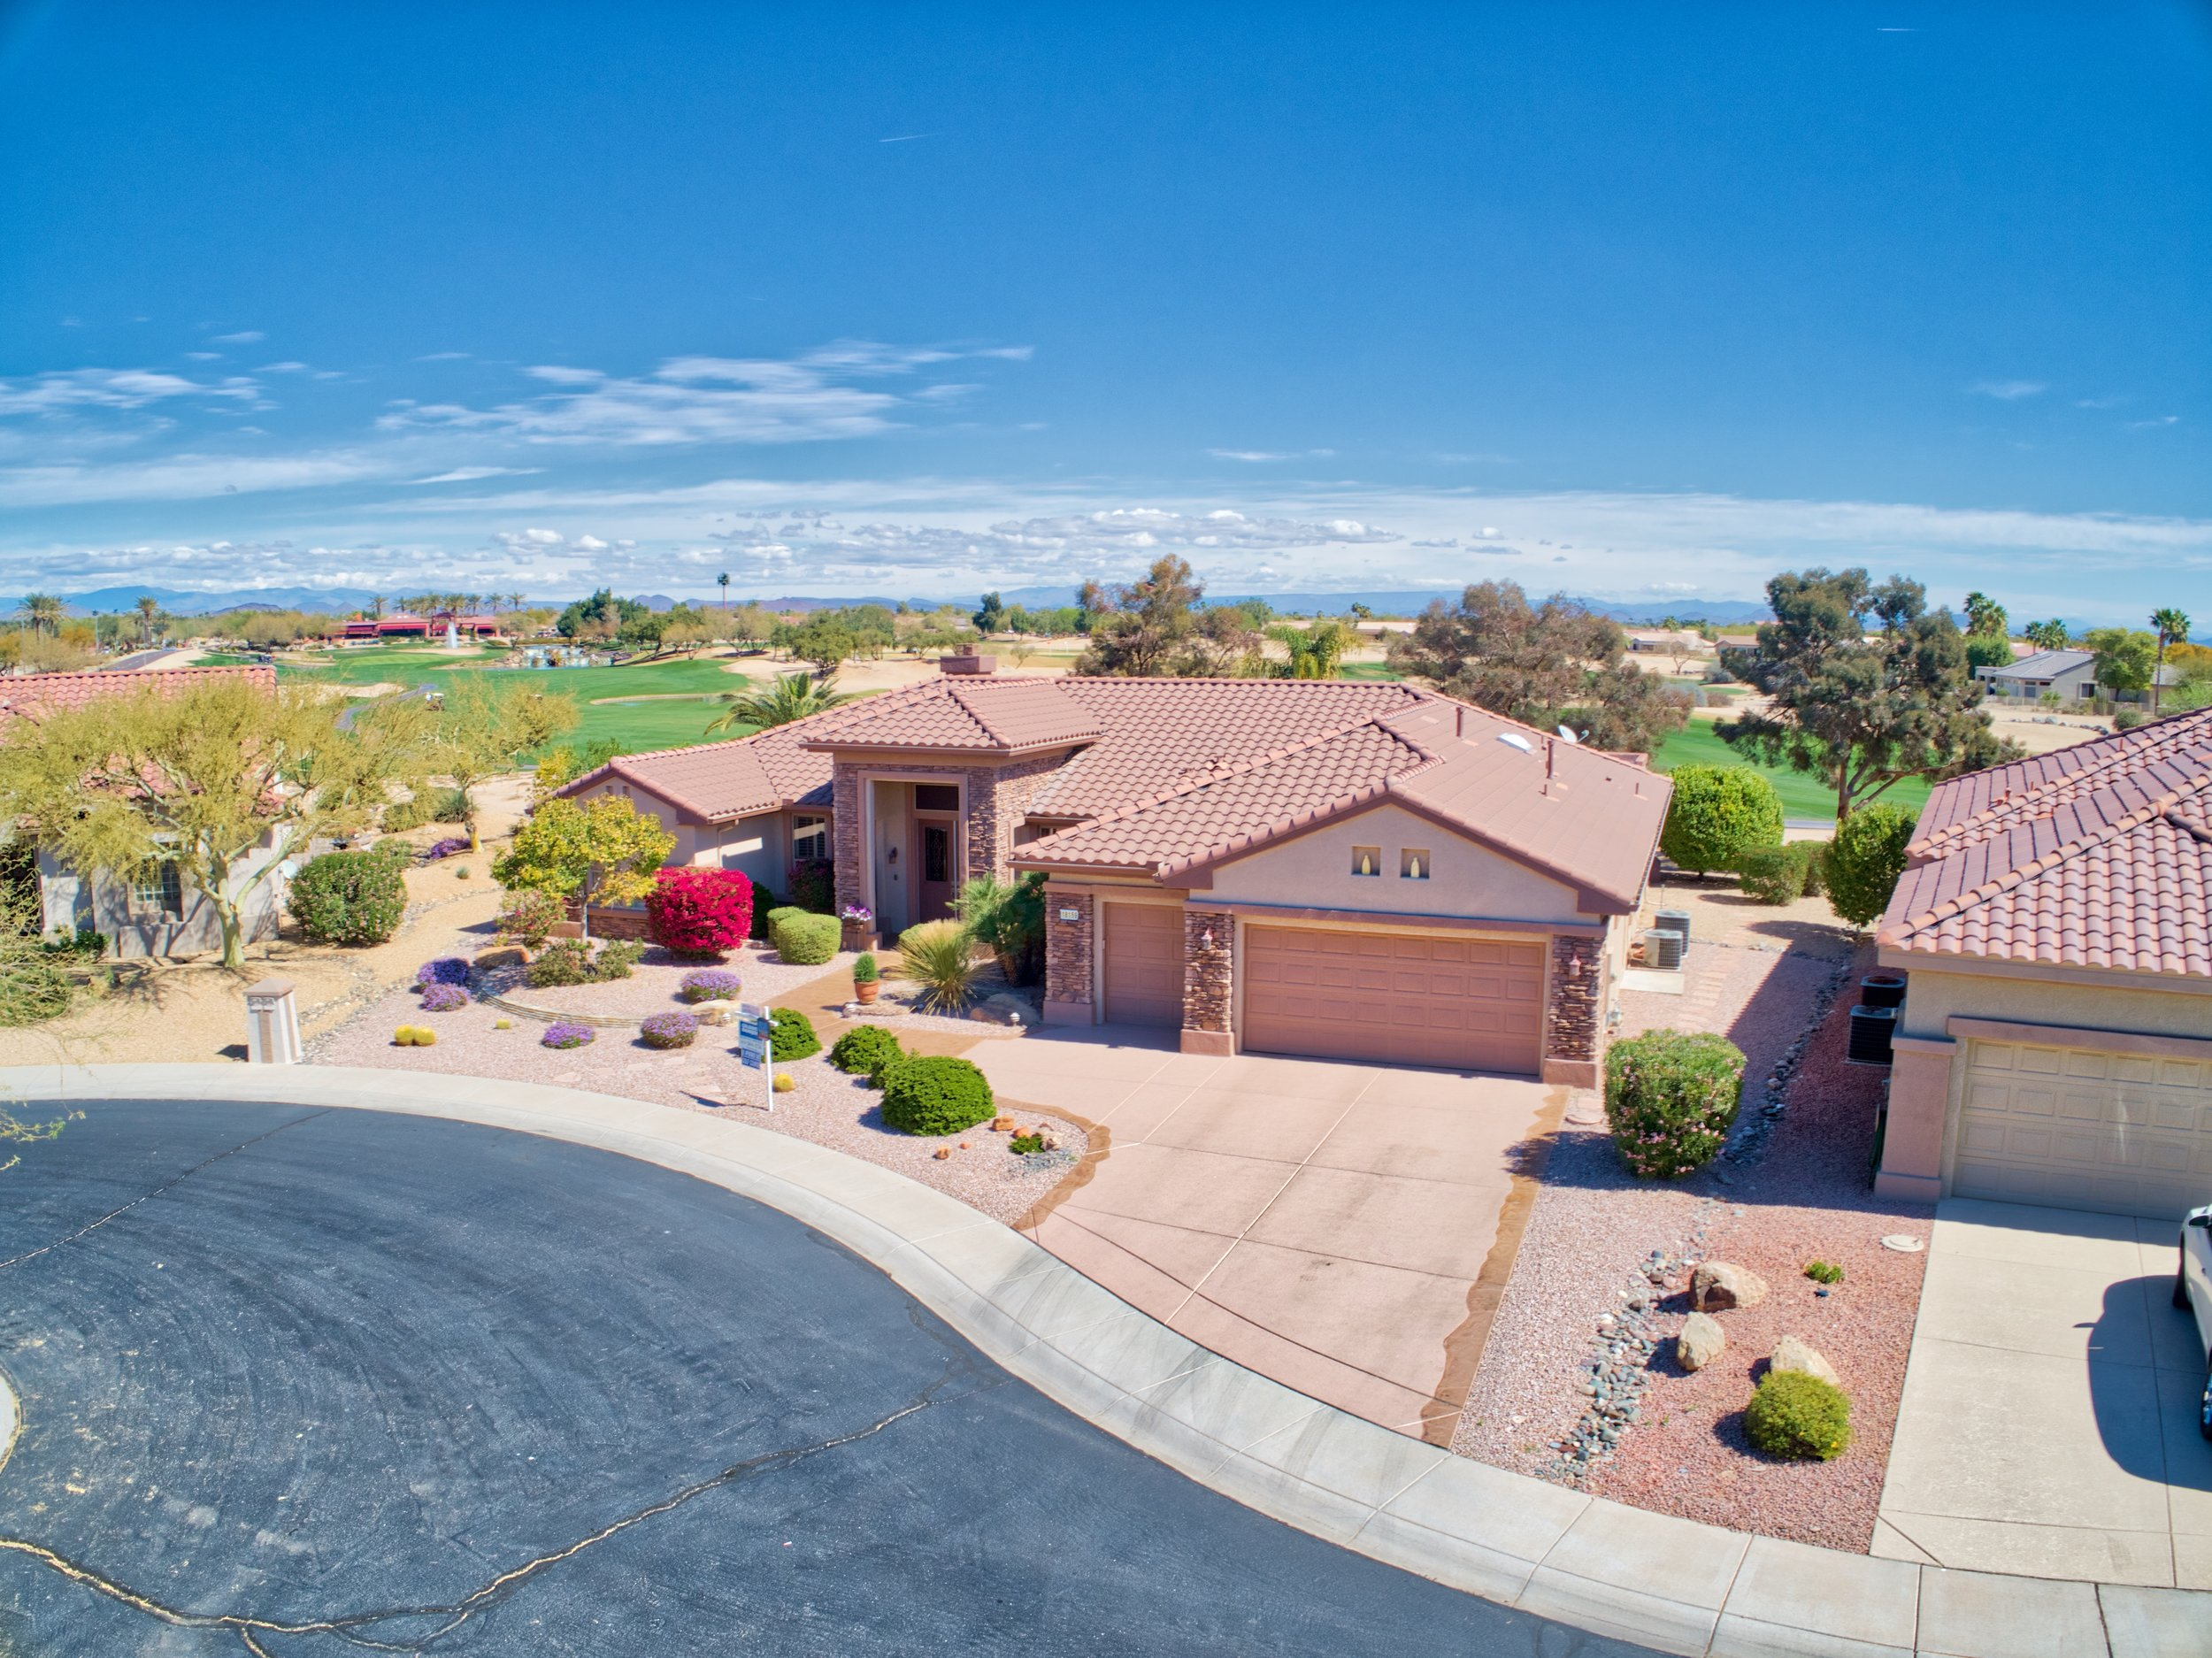 Arizona Real Estate Agents Get Your $19.99 Aerial Real Estate Photography Package Today!!